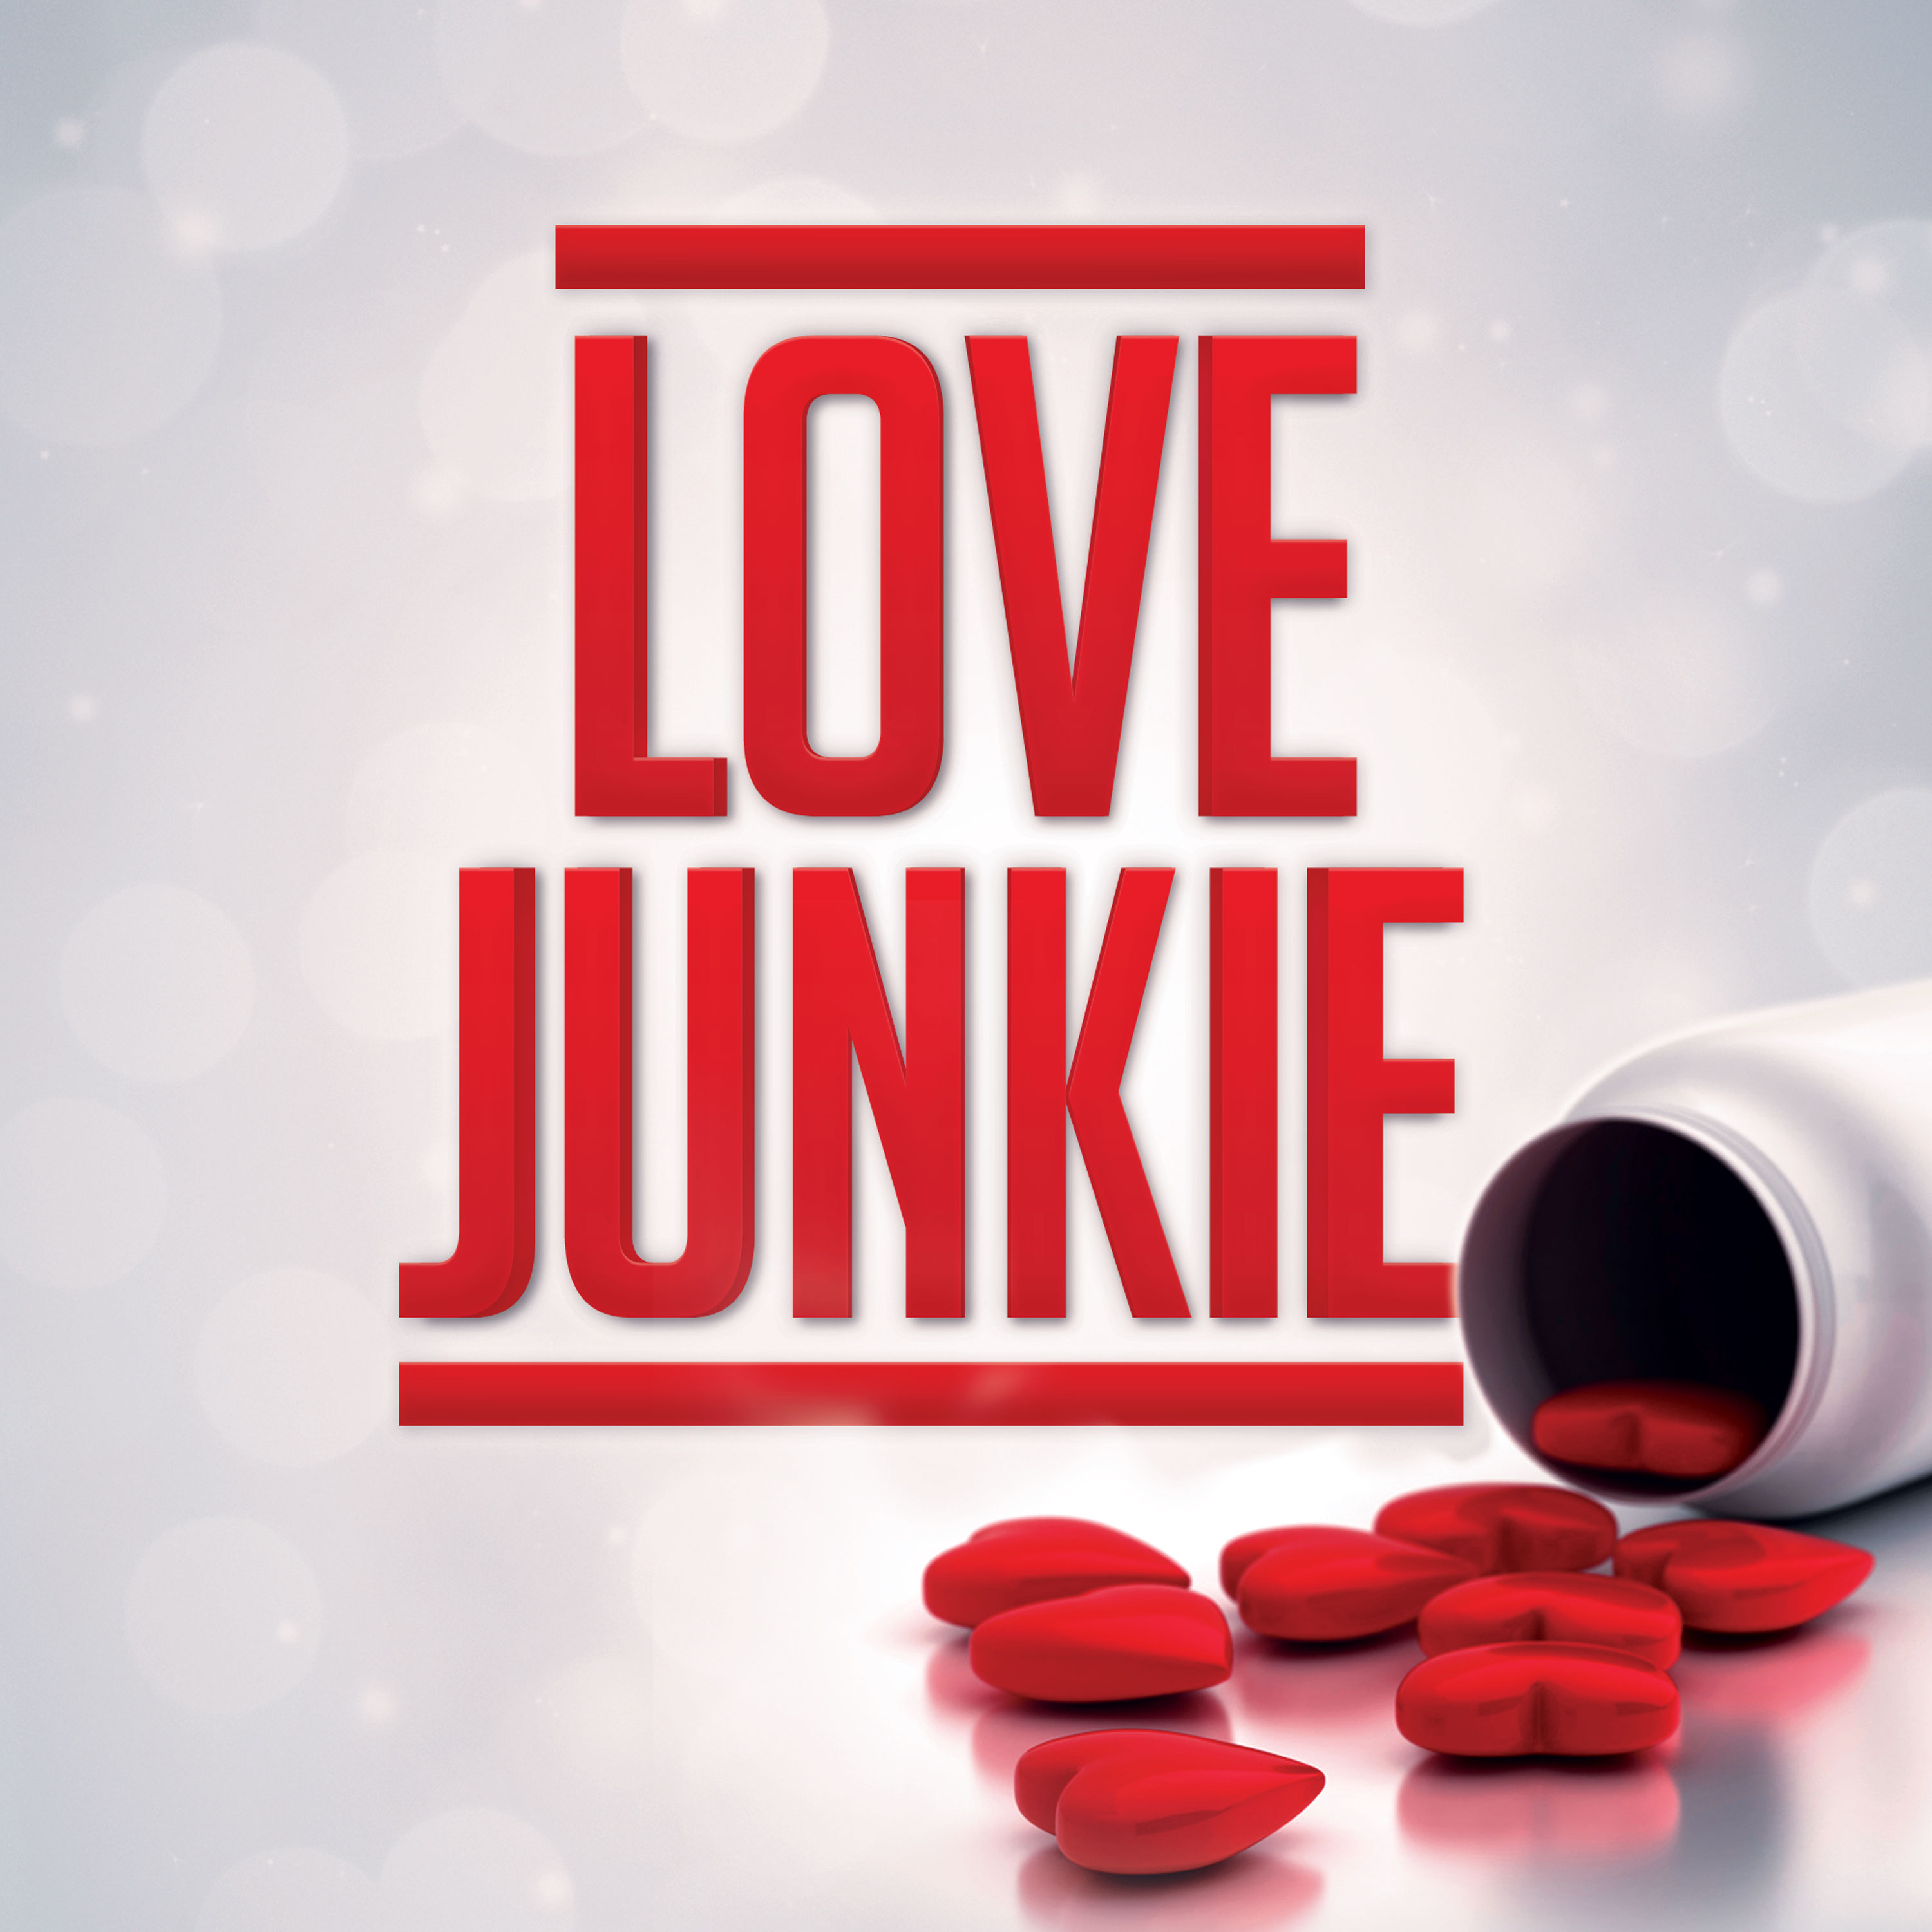 Love Junkie: Help for the Relationship Obsessed, Love Addicted, & Codependent - Episode #7: Intimacy Disorders, Love Addiction, and Love Avoidance